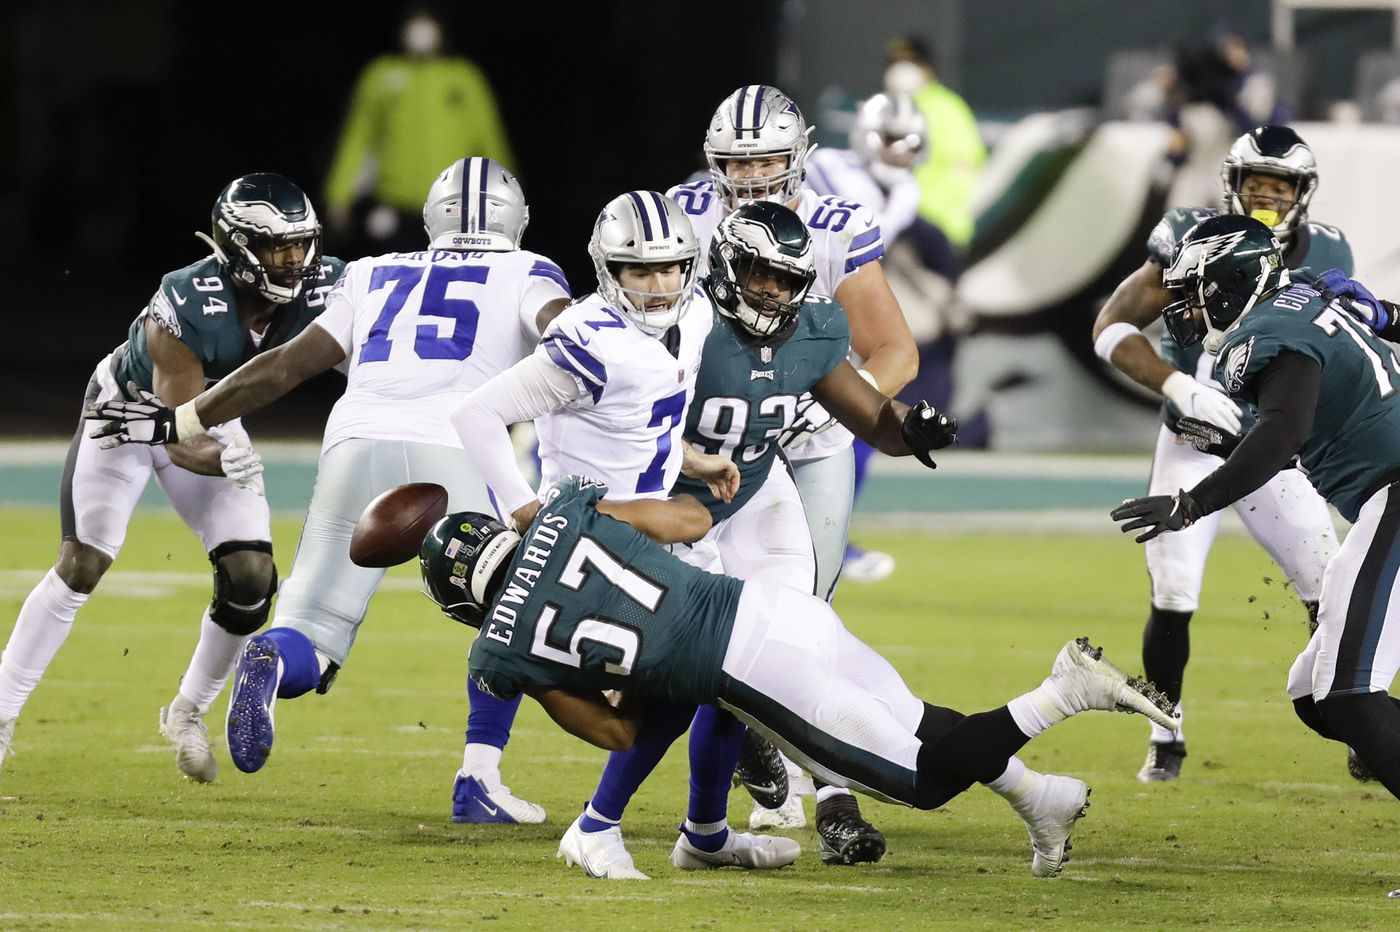 Eagles' defense, led by Rodney McLeod and T.J. Edwards, bails out Carson Wentz and the offense in win over Cowboys